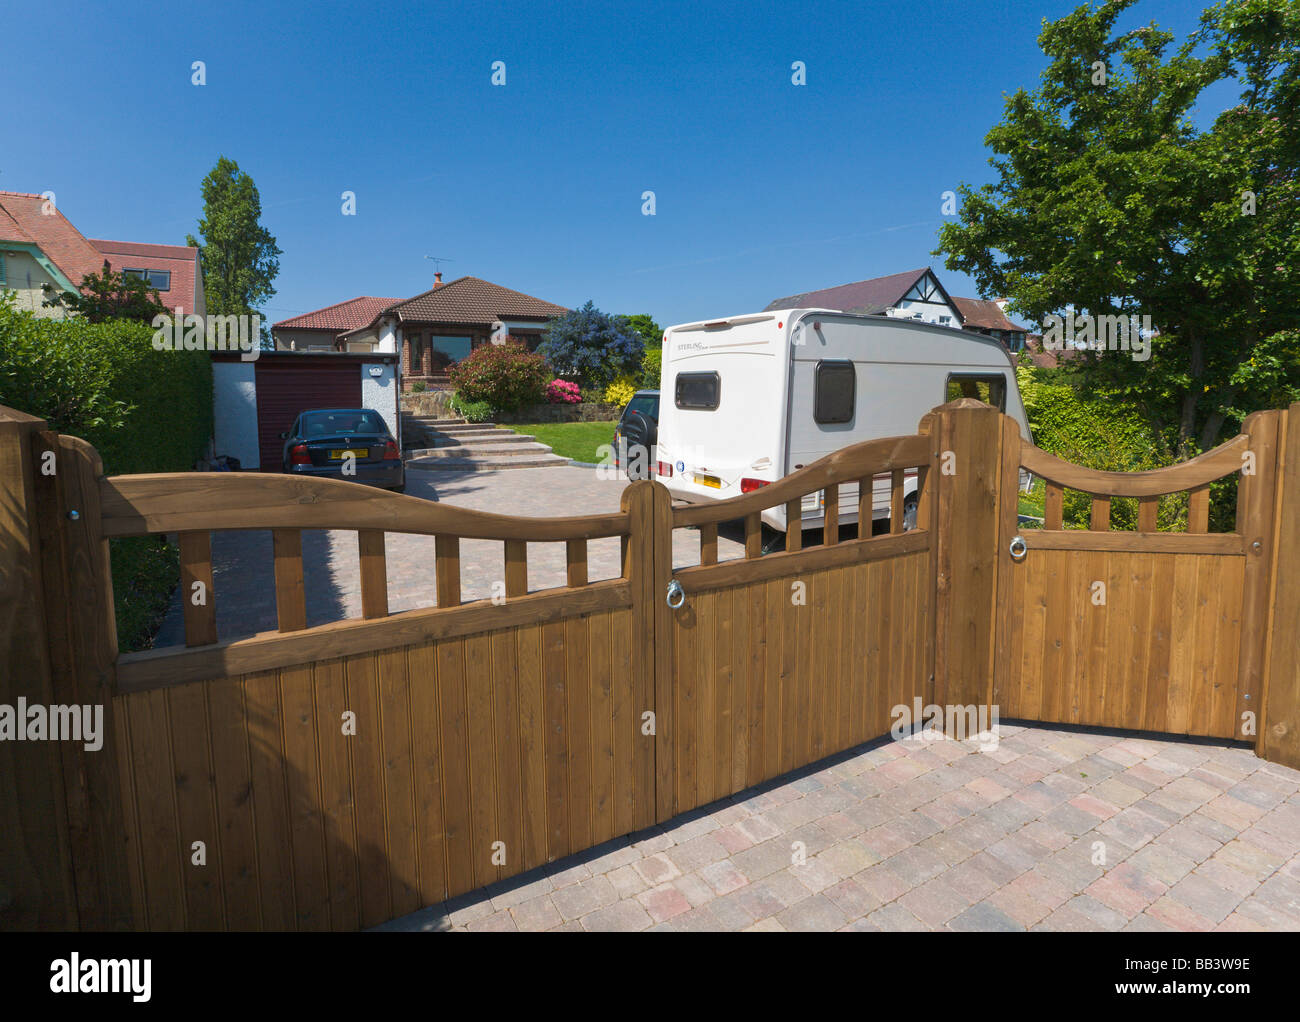 Driveway and garage of detached bungalow with parked cars and caravan - Stock Image